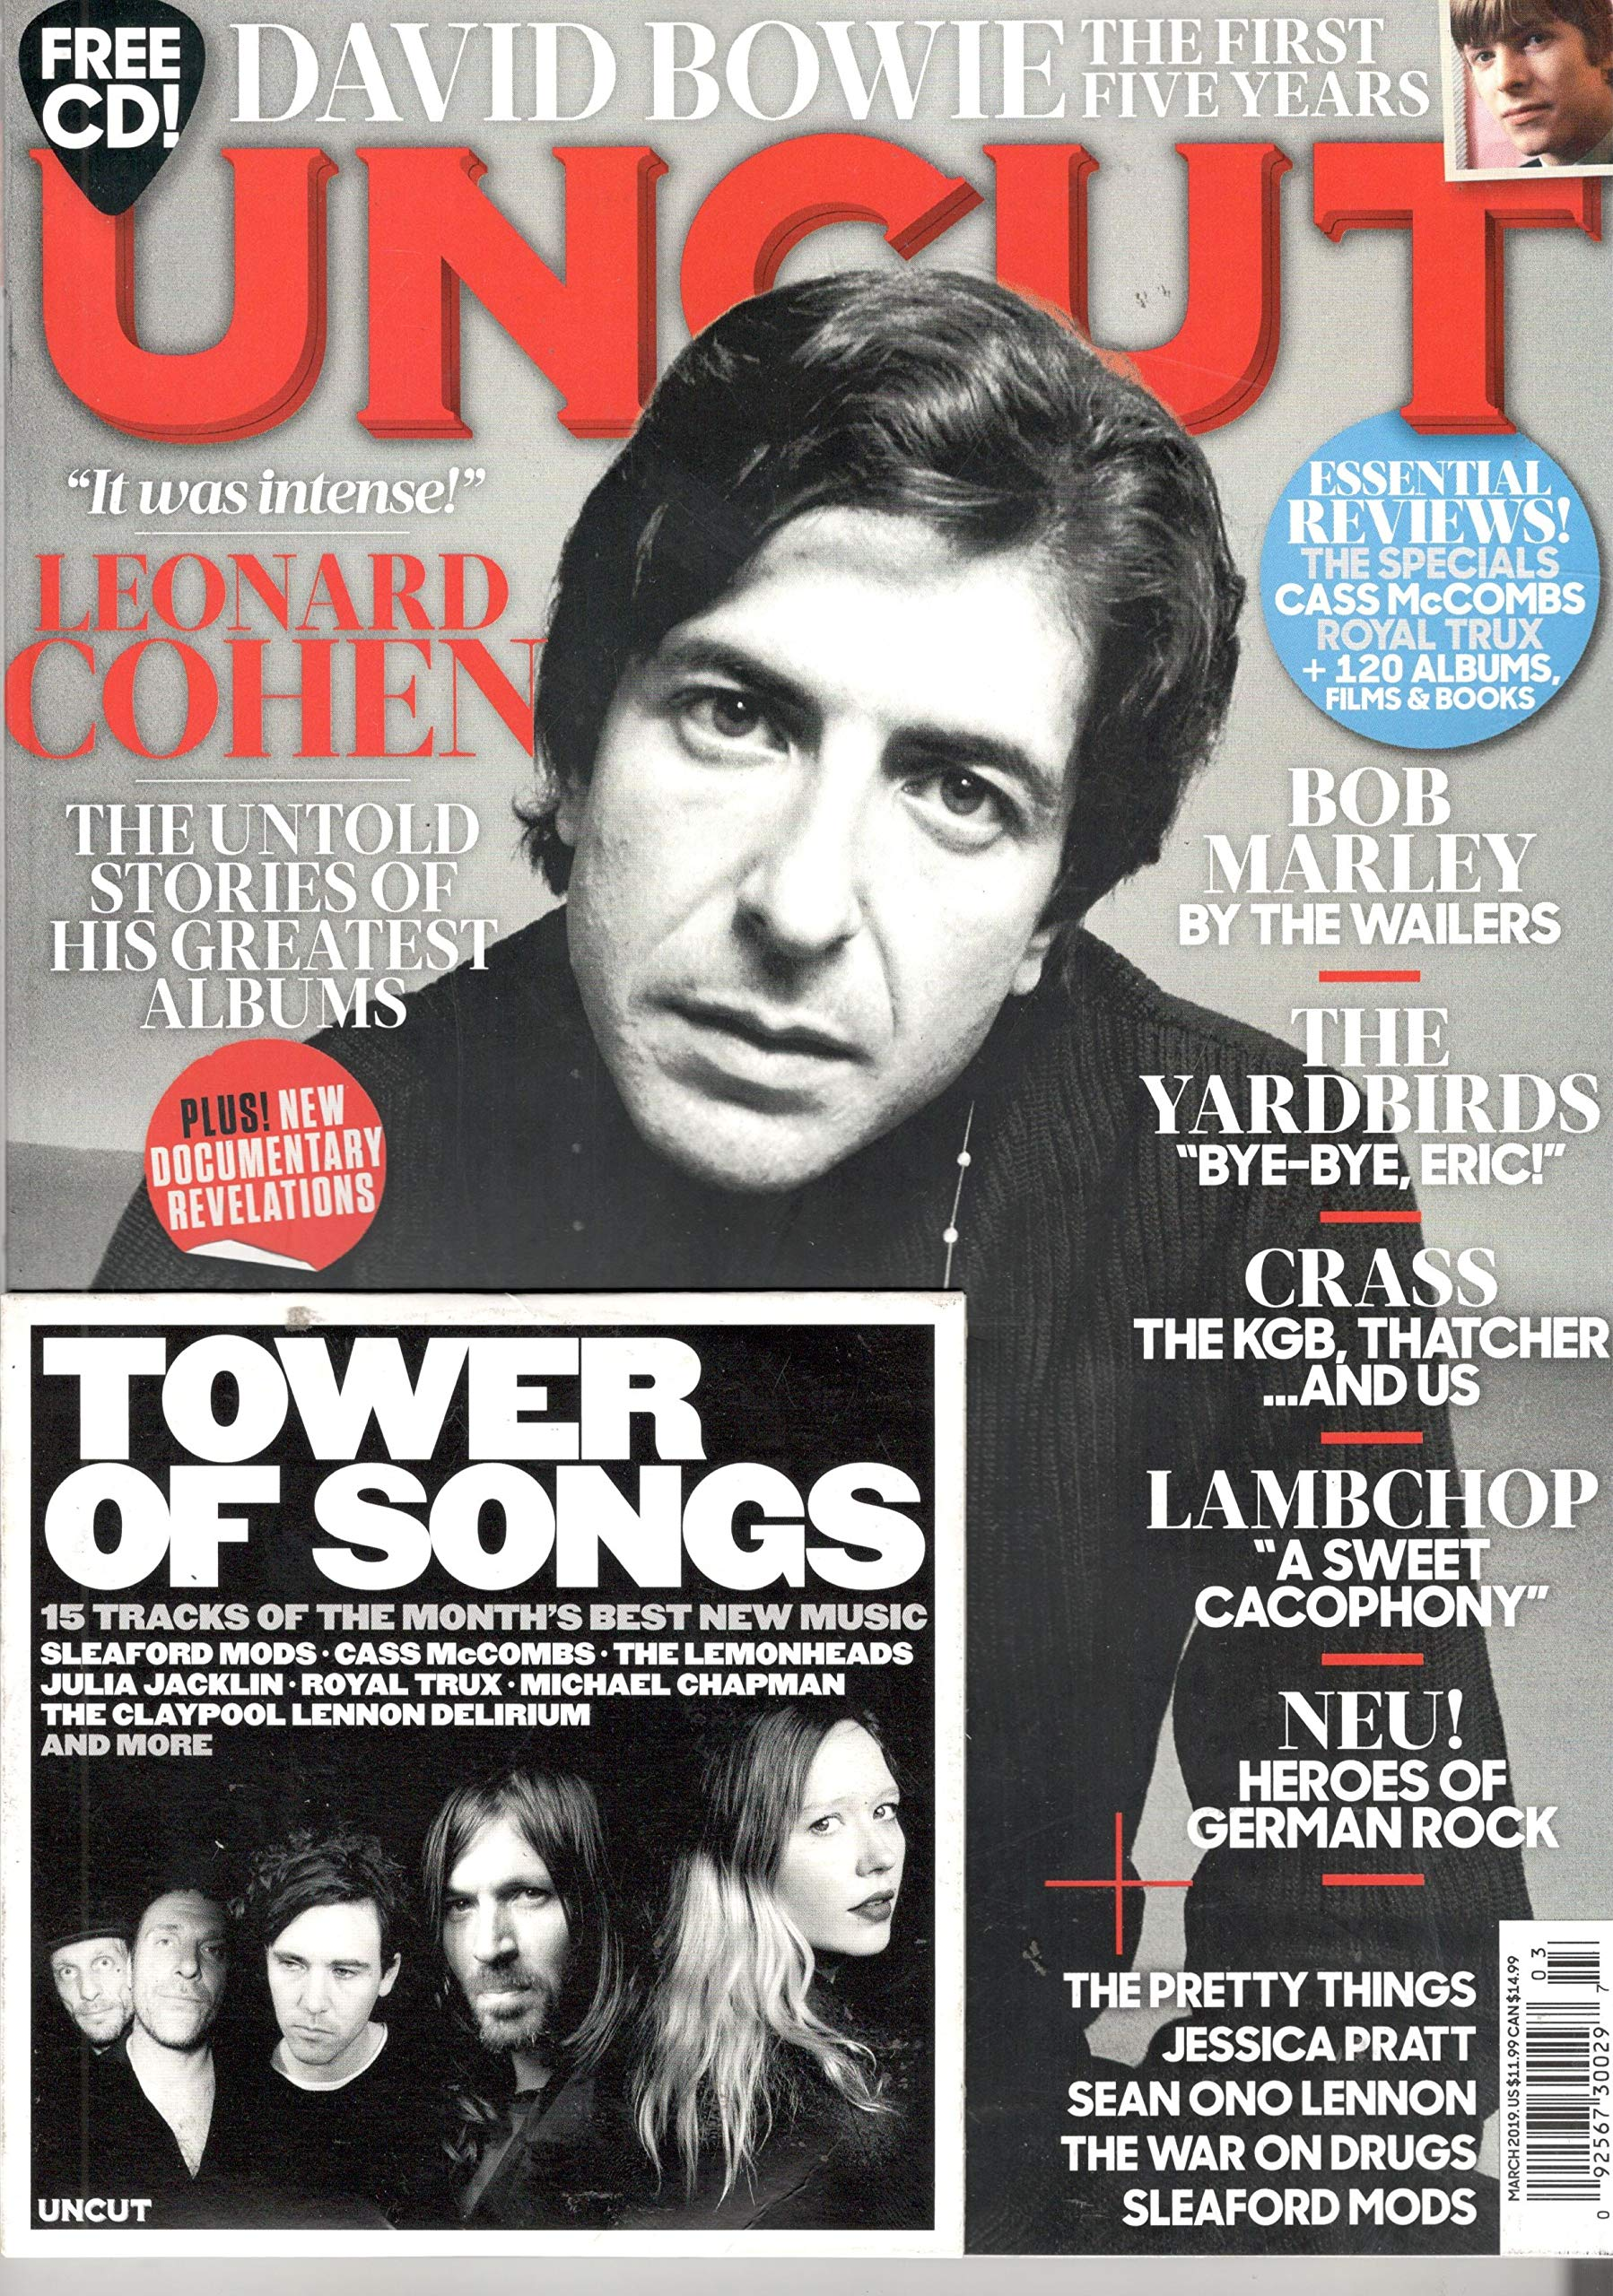 571b19fe3057 Uncut Magazine (March